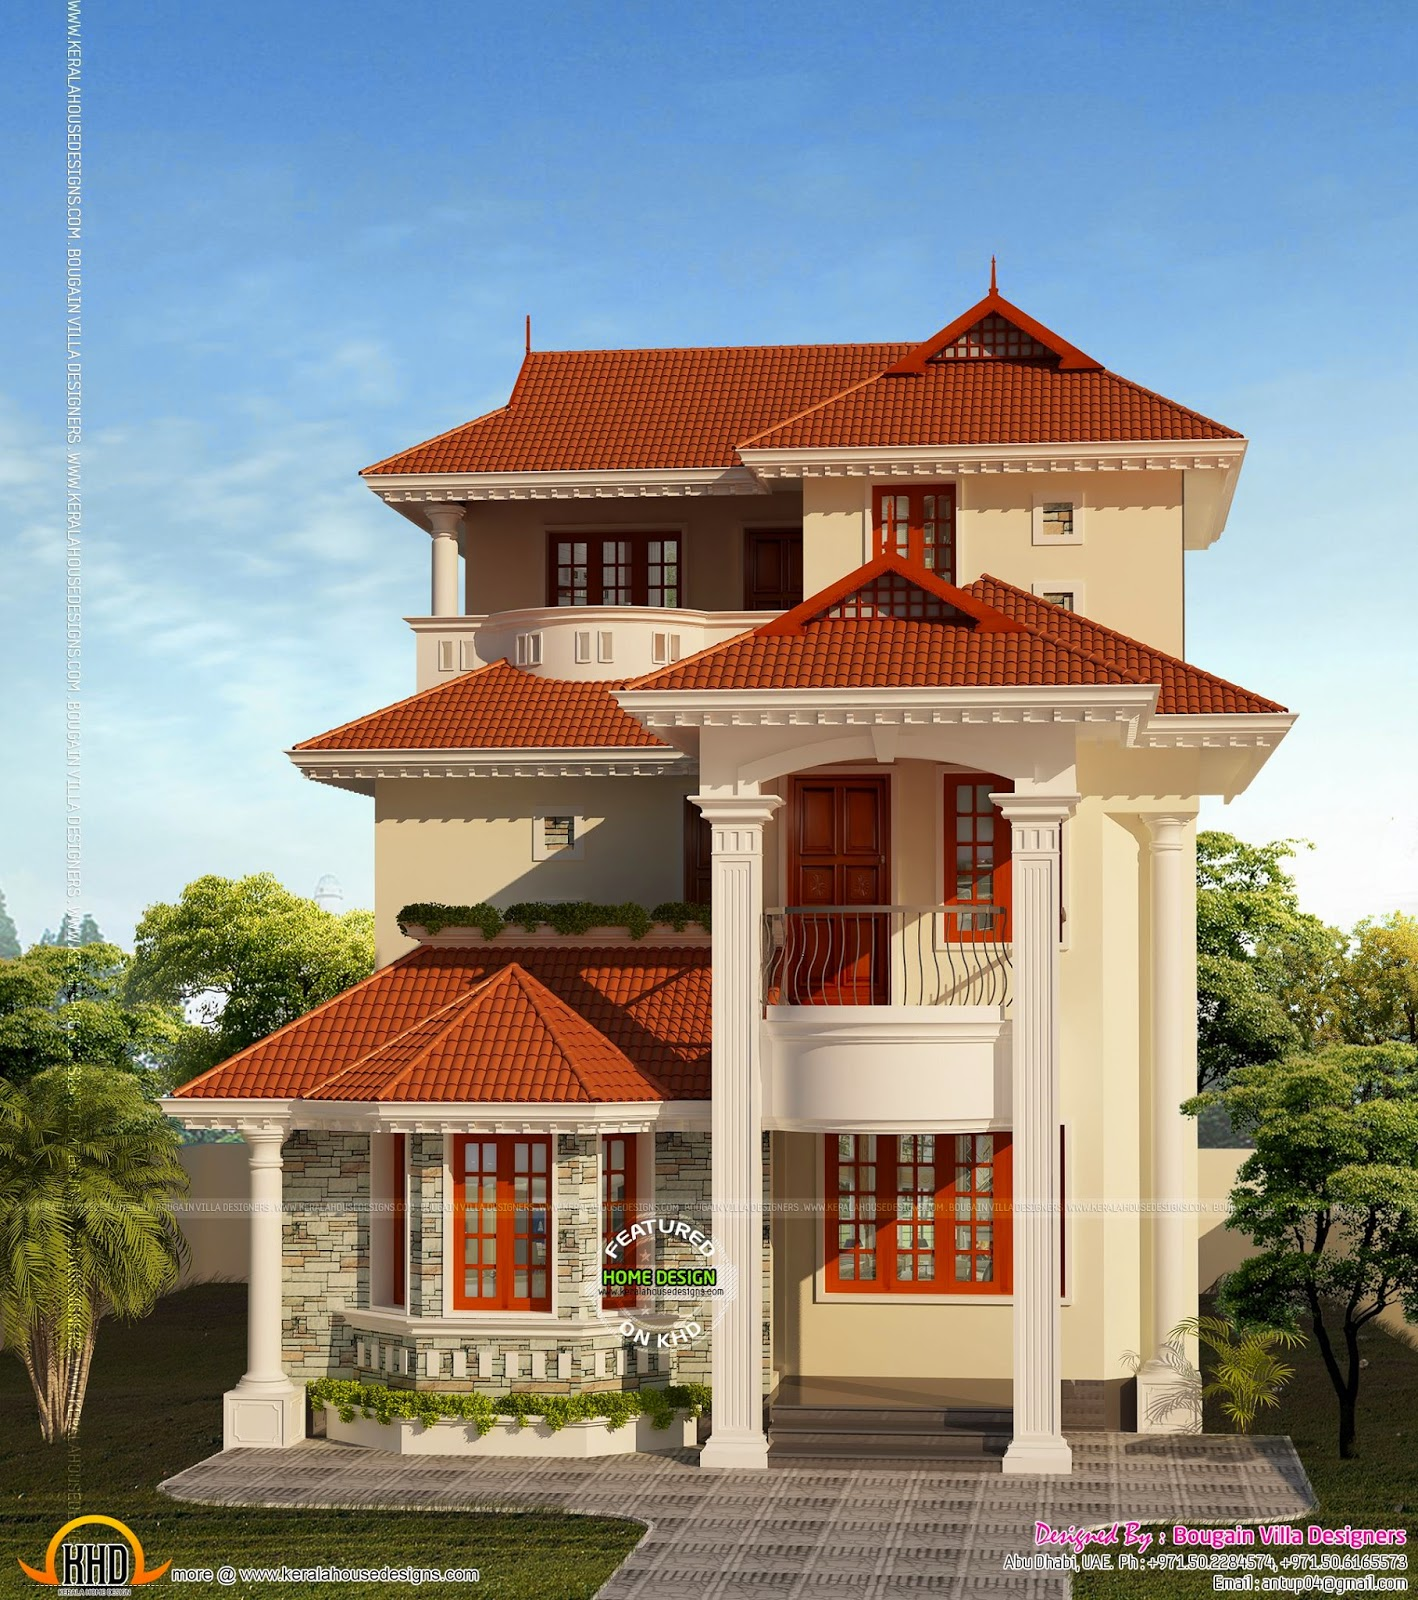 Small plot house plan kerala home design and floor plans for Small house design in kerala